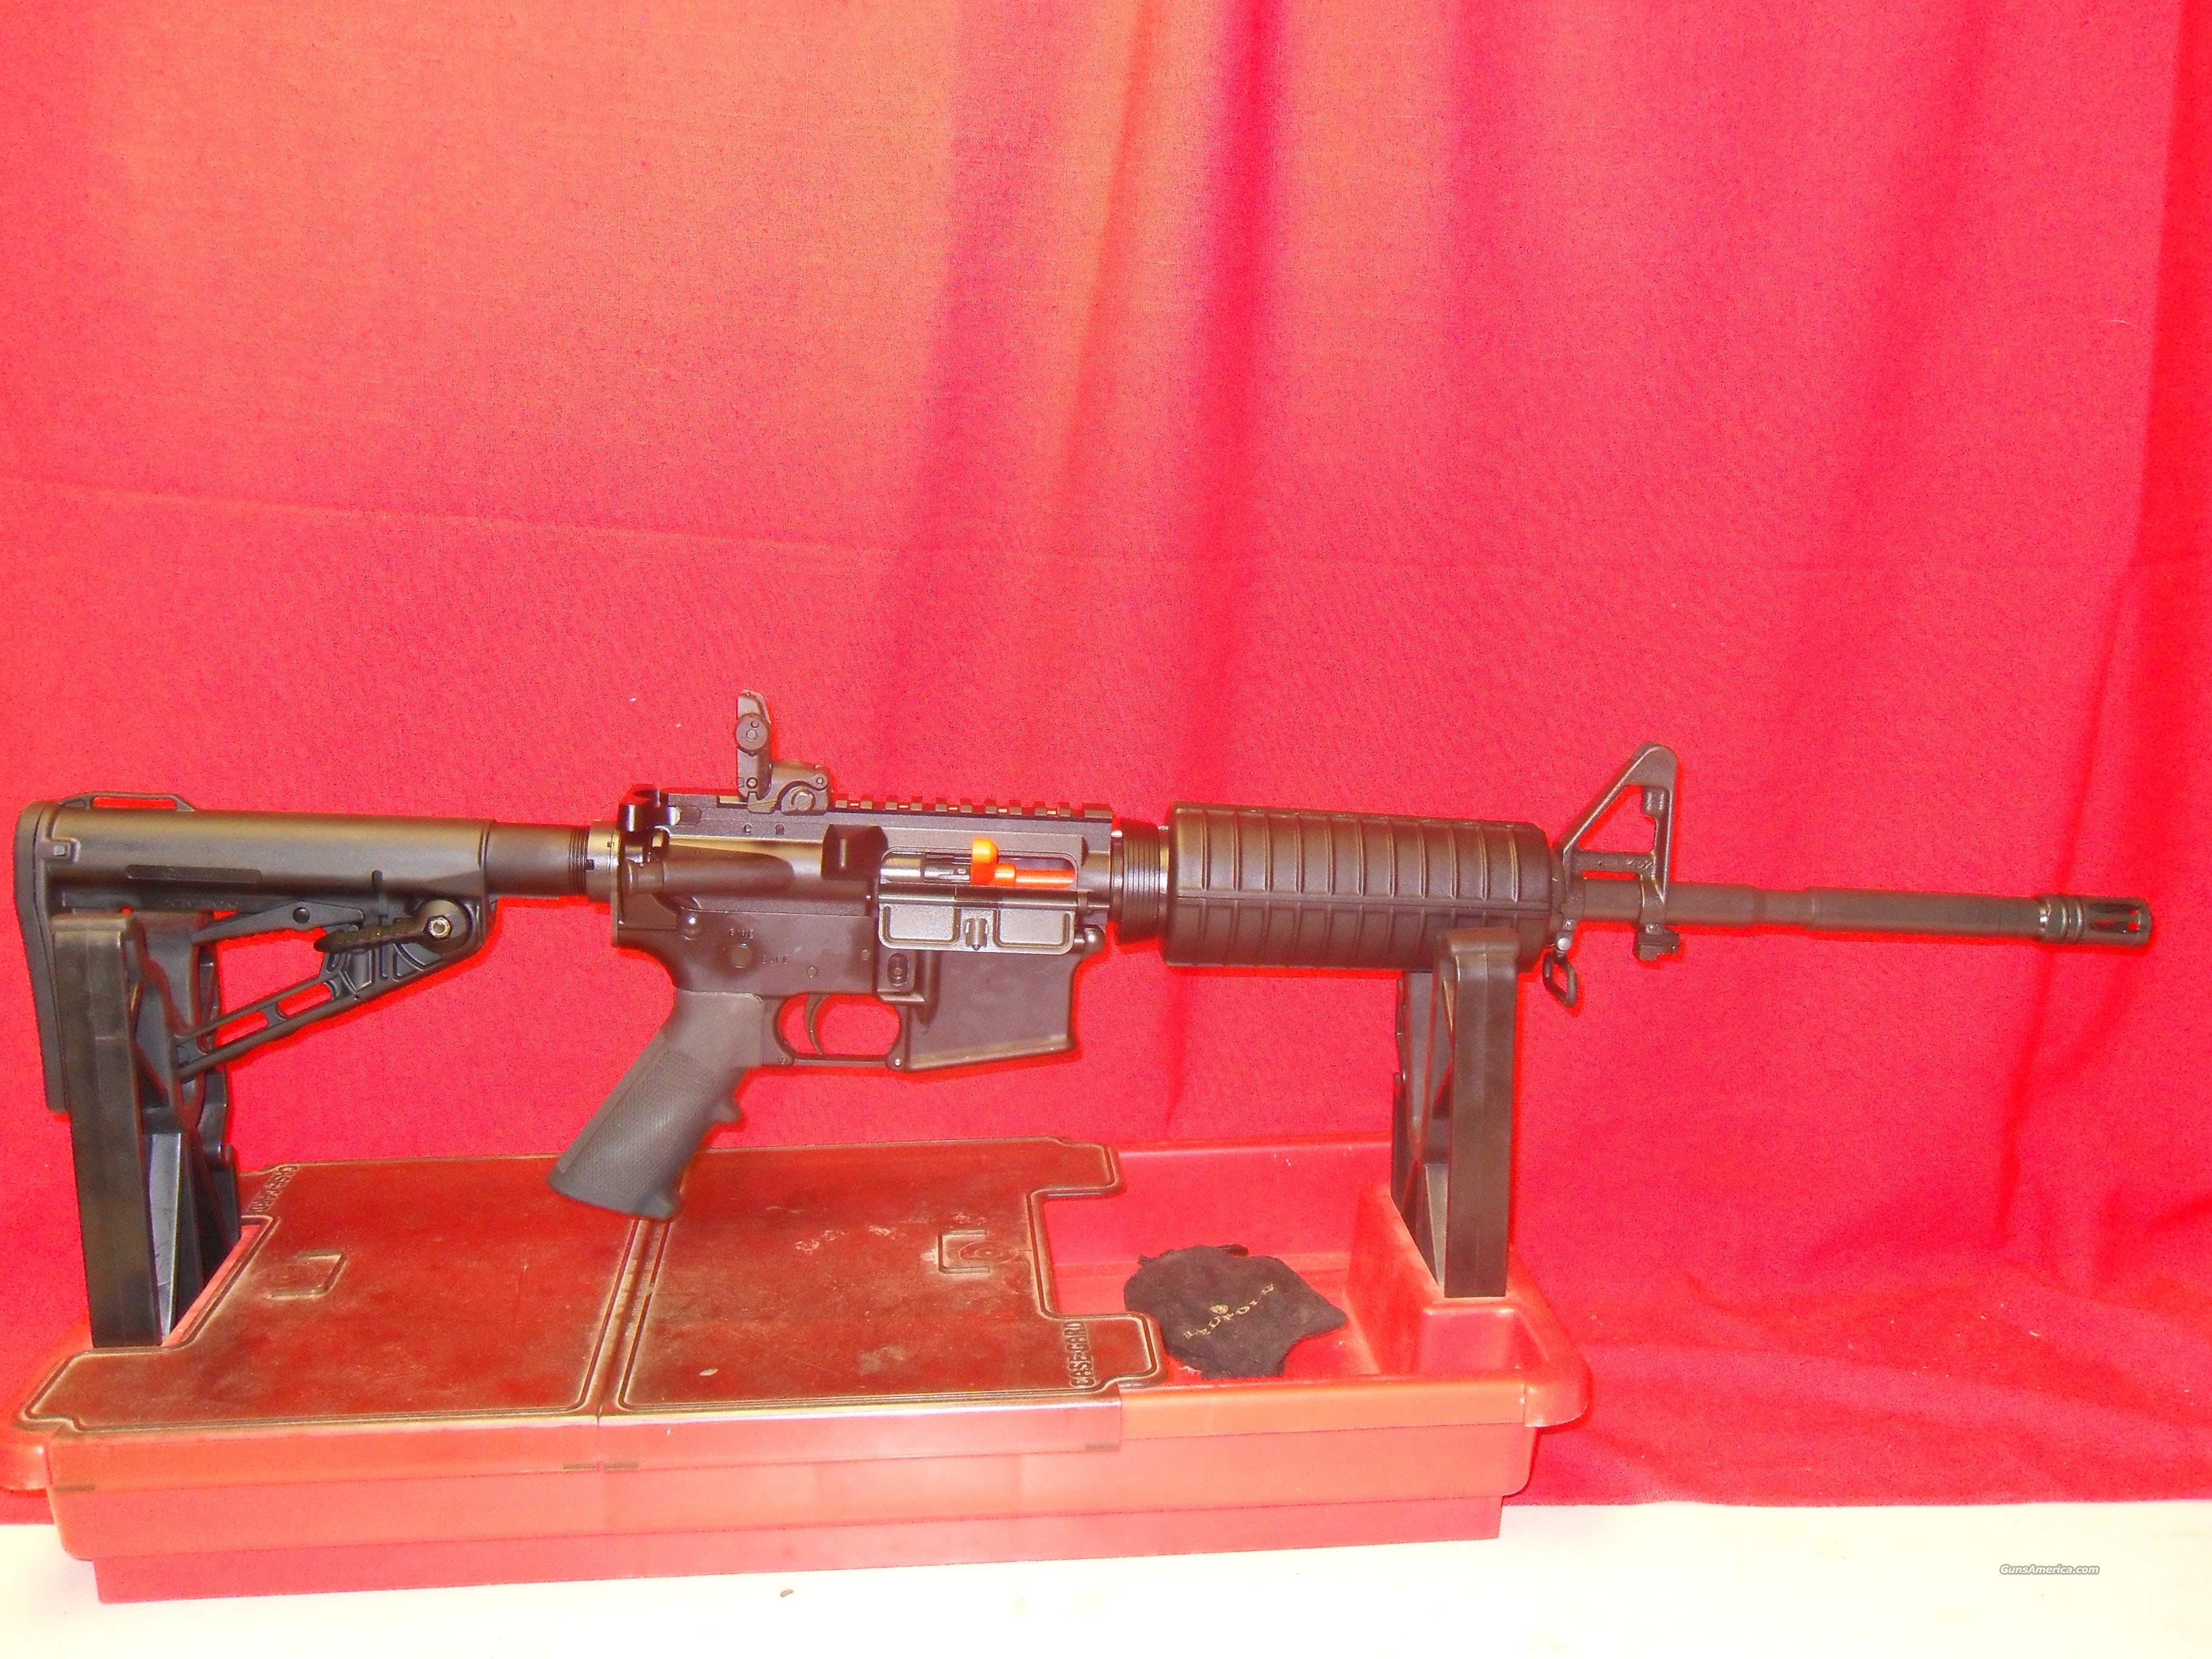 Colt M4 Carbine LE6920 (2013 config) FREE SHIPPING  Guns > Rifles > Colt Military/Tactical Rifles